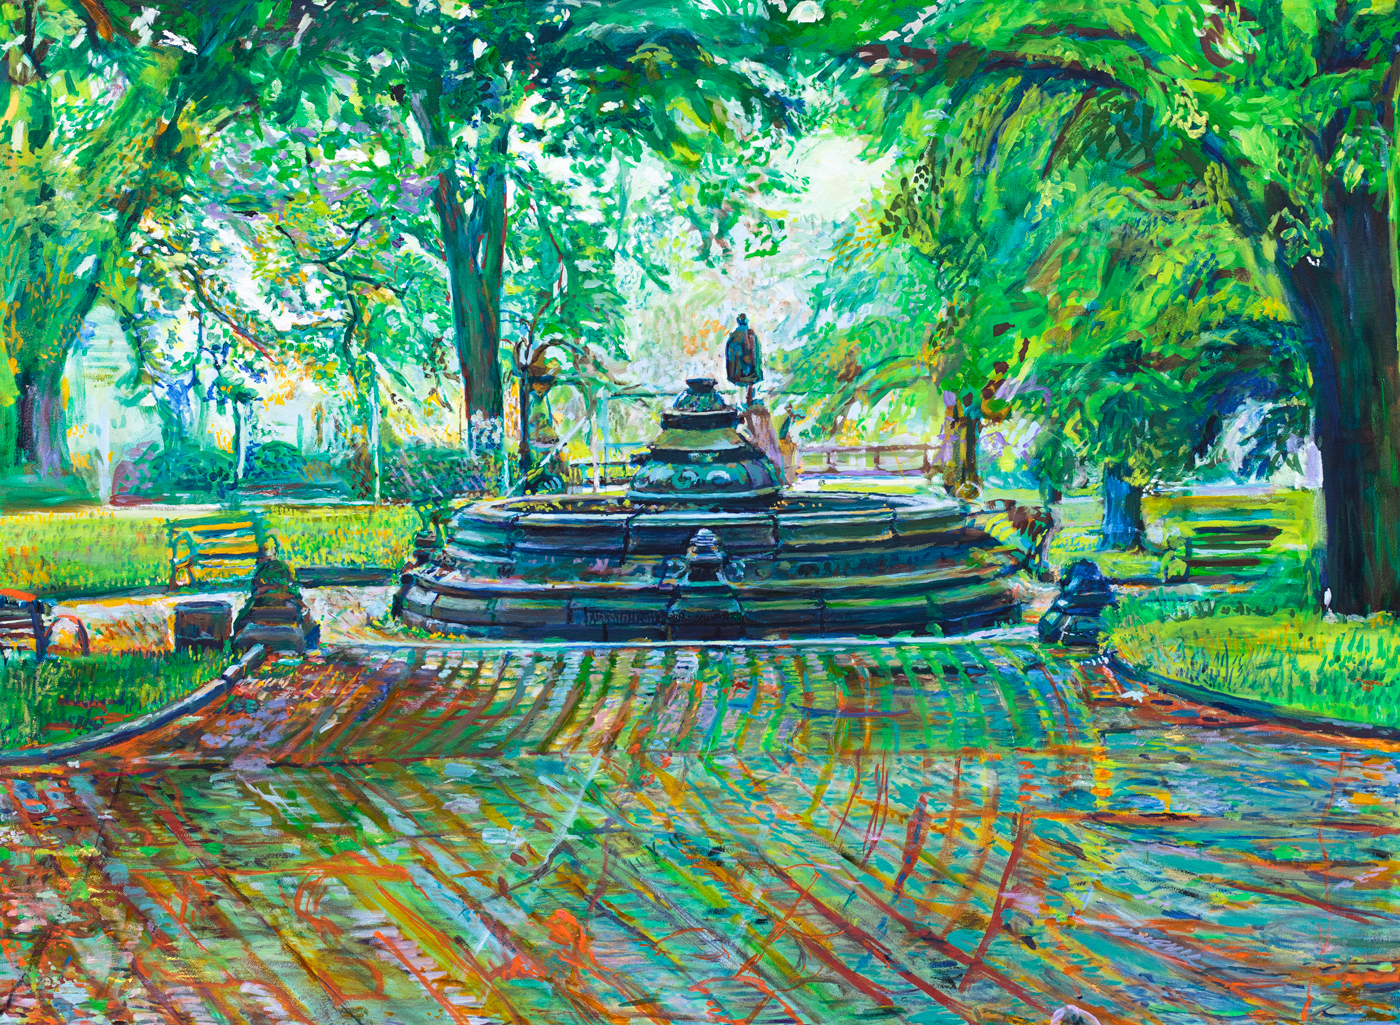 Painting of the Prospect Park Concert Grove by Noel Hefele